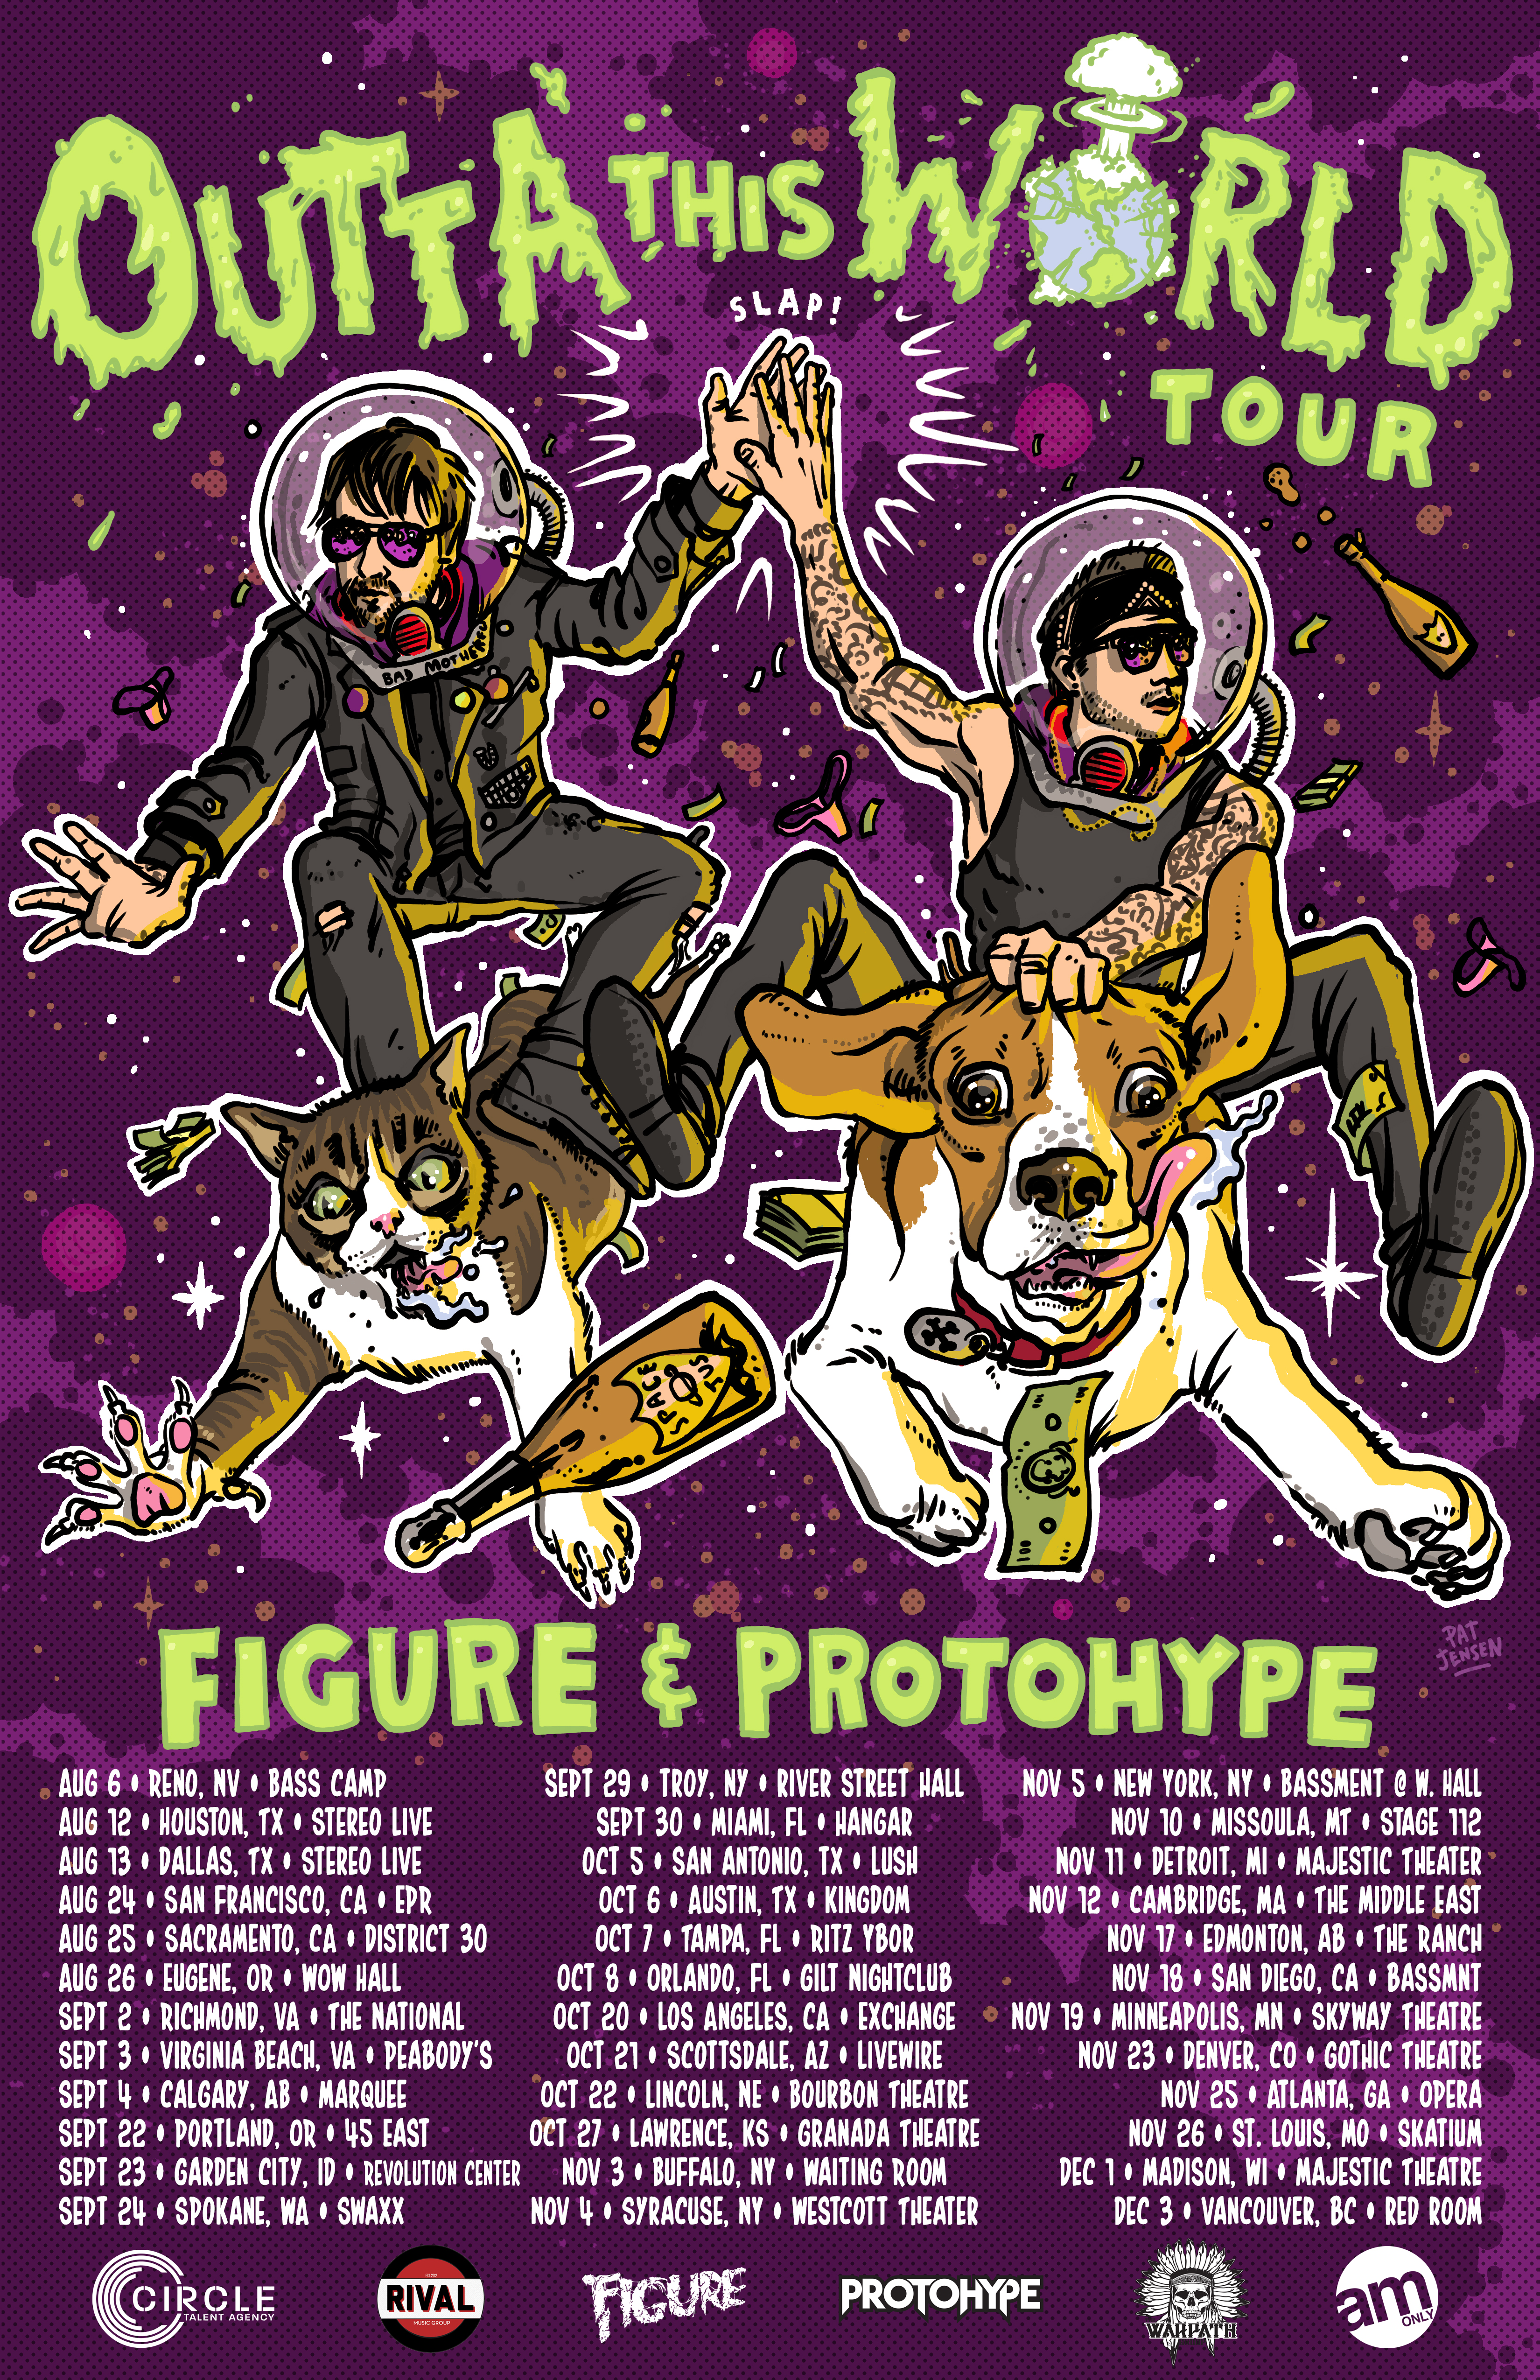 outta-this-world-tour-11x17-updated-dates